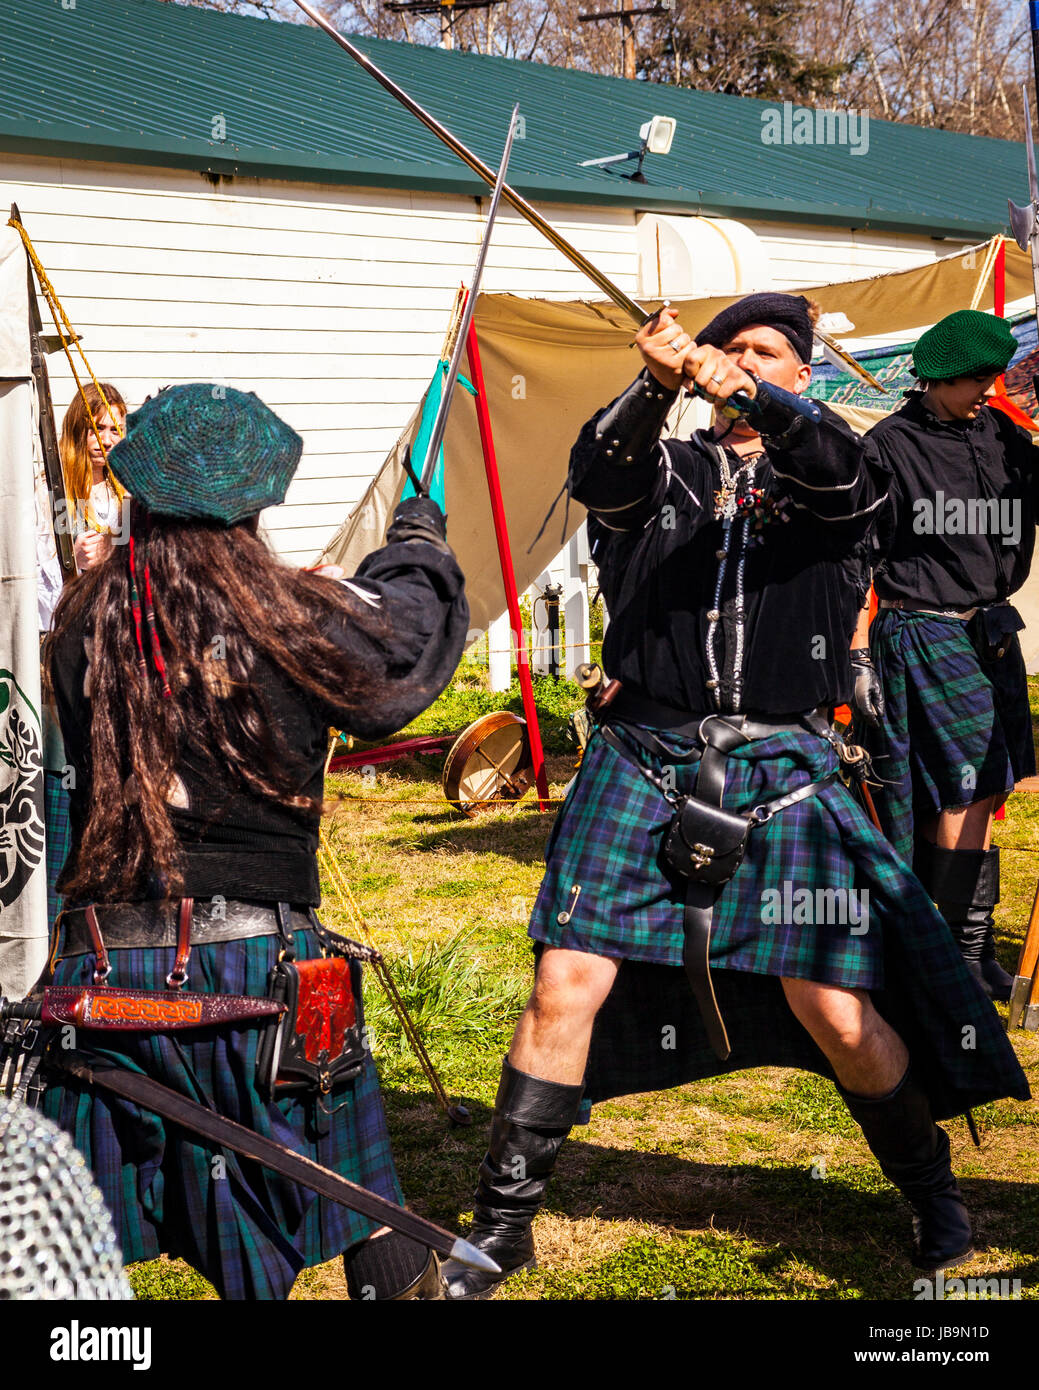 scenes-from-the-sonora-california-celtic-faire-in-2011-JB9N1D.jpg